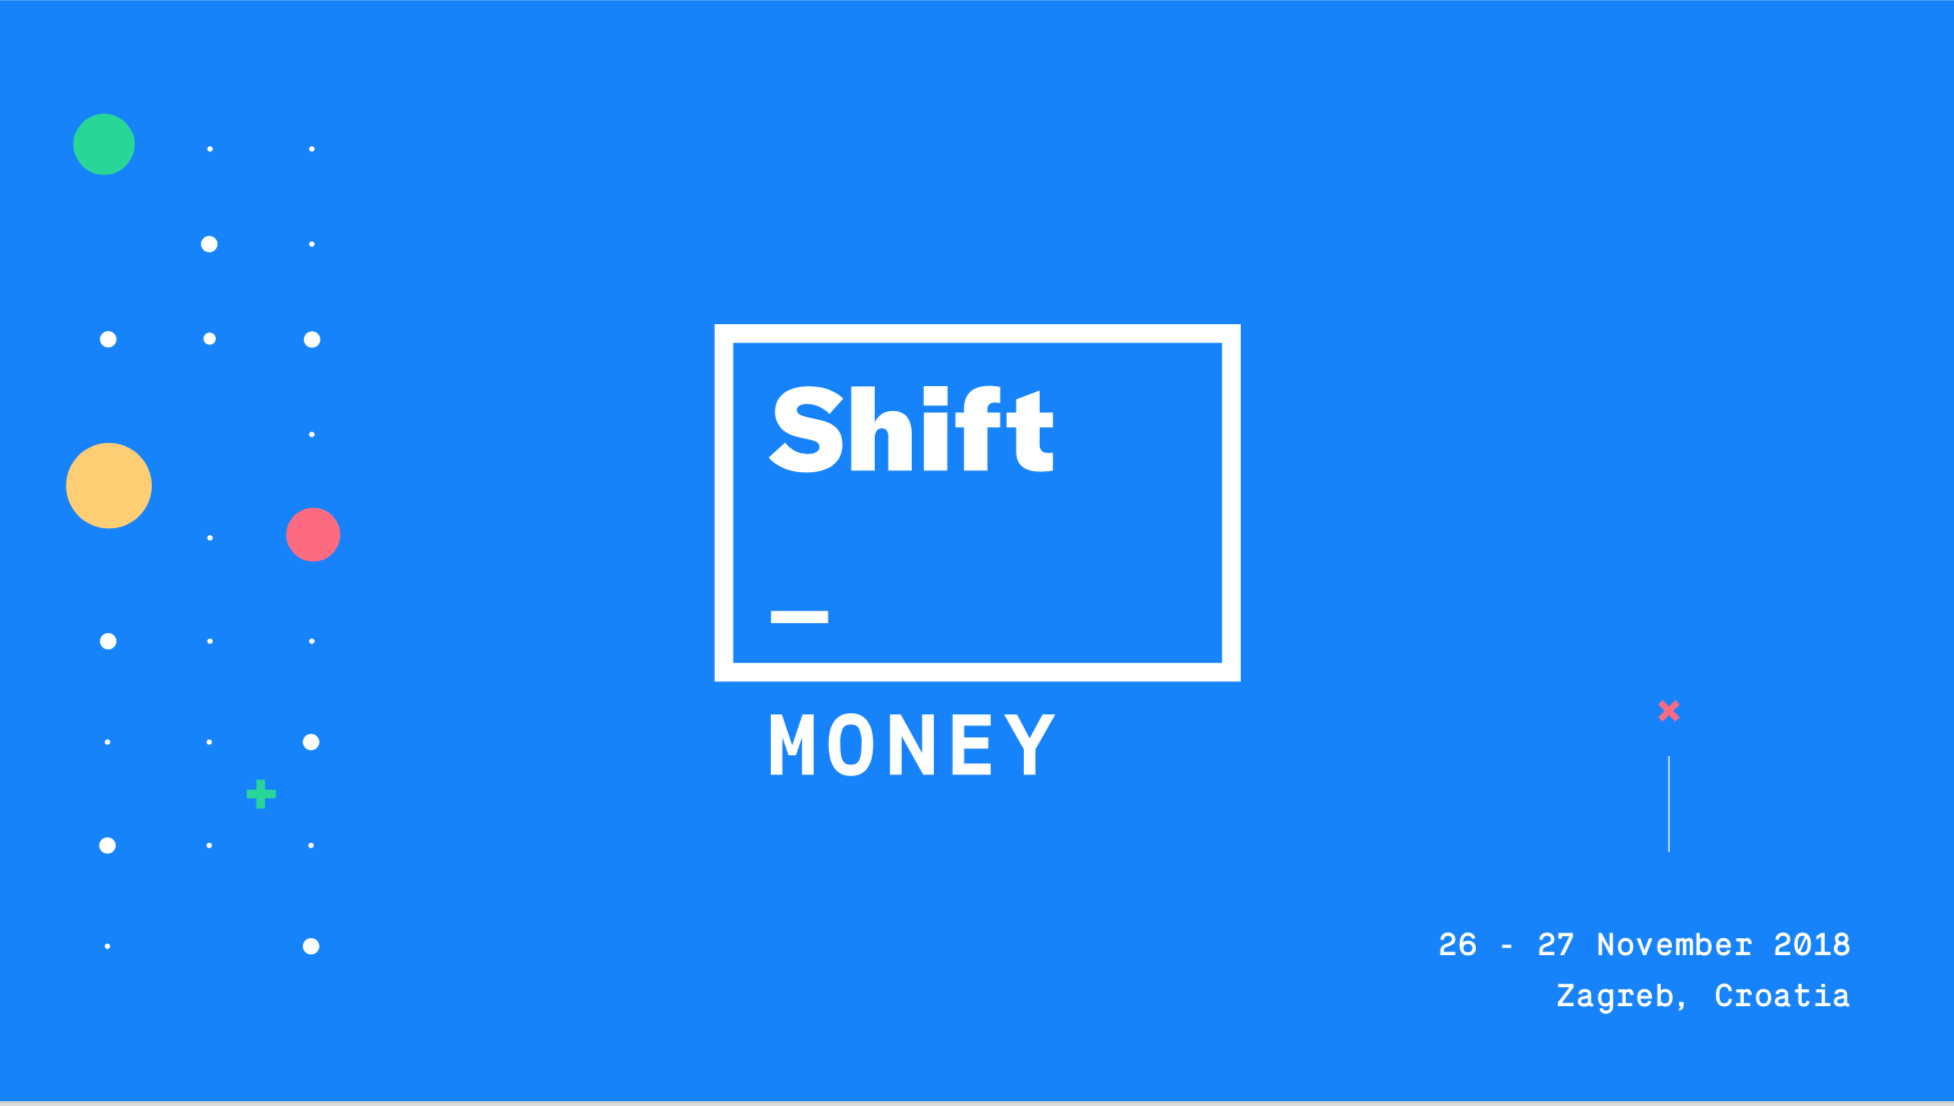 Shift money